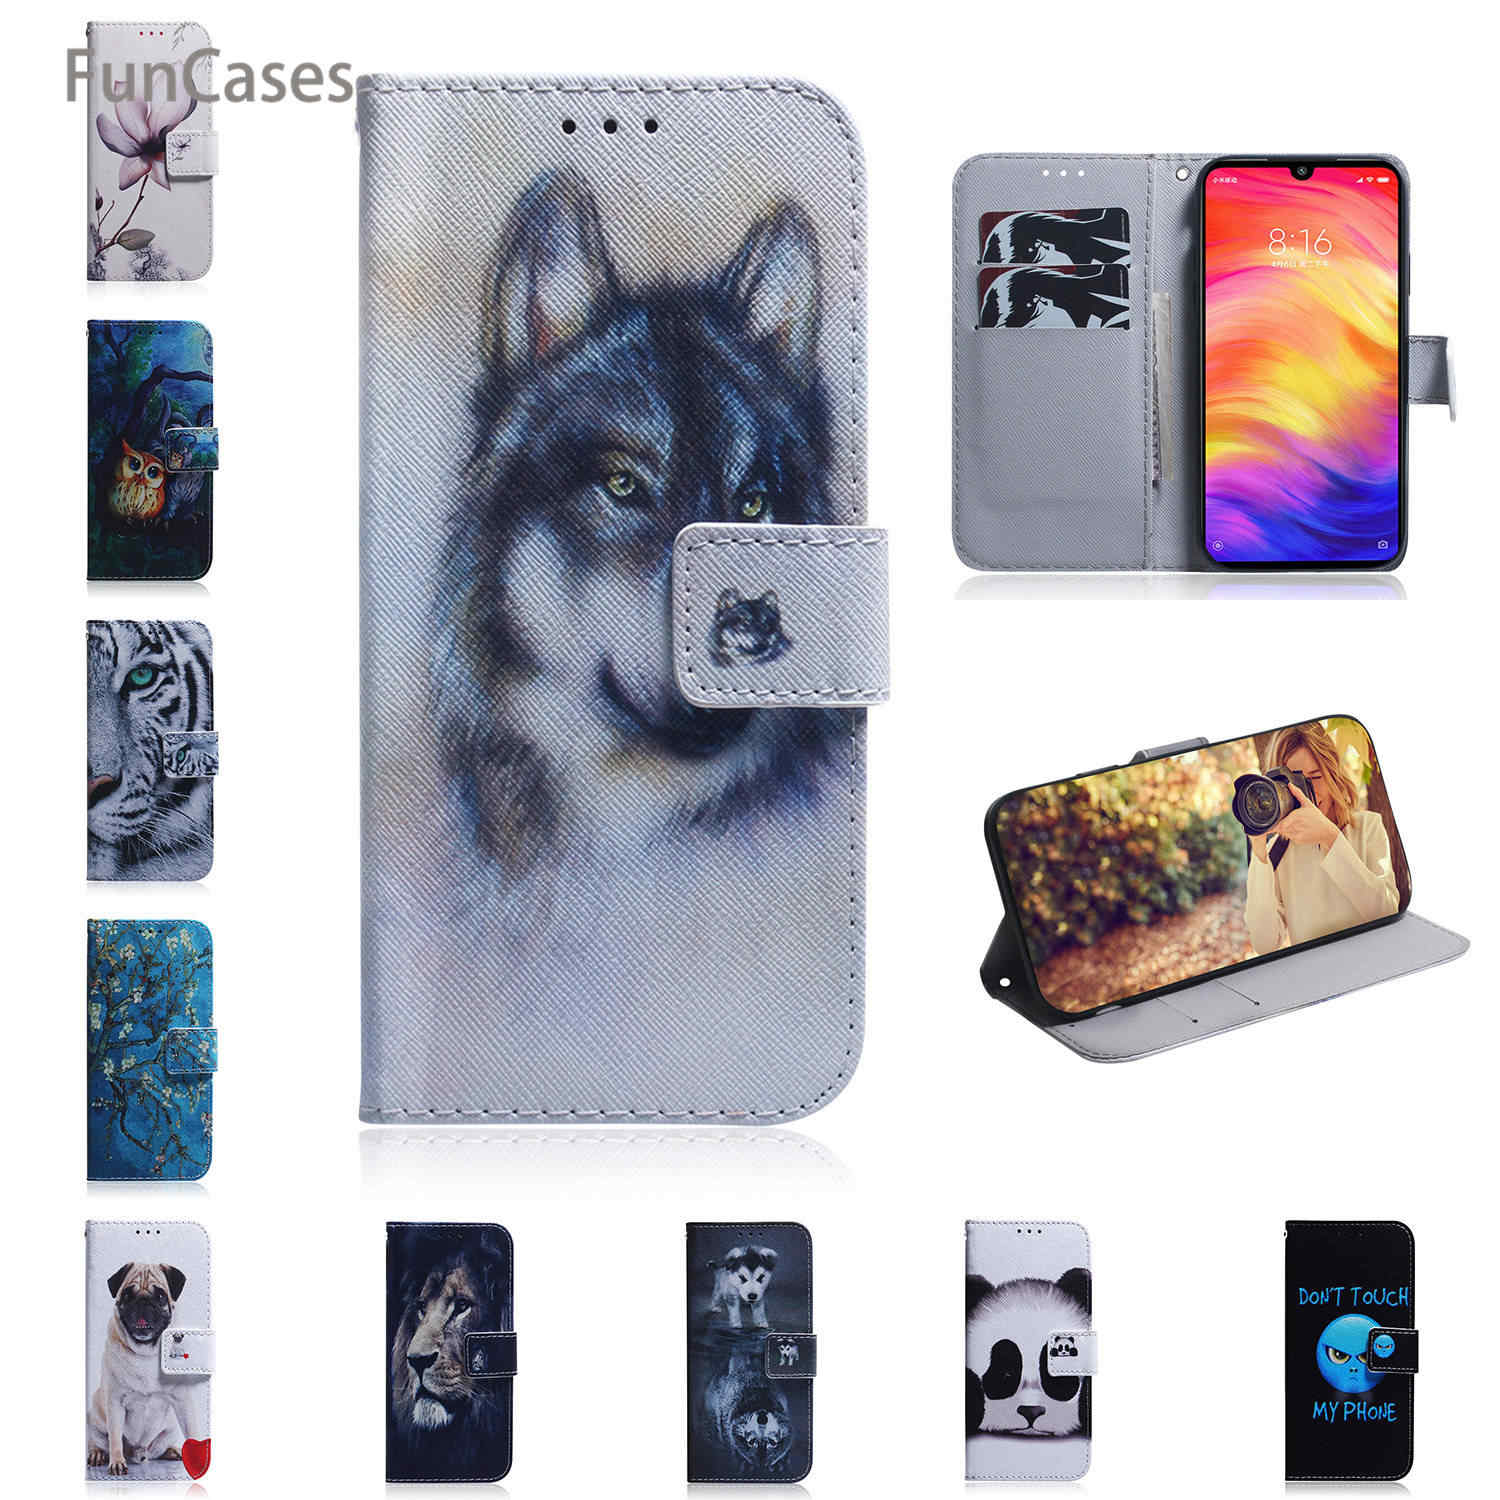 8X Cases For coque Huawei Honor 8C Magnolia PU Leather Book Case sFor Huawei estuche Honor 20 Pro 8S 8X V20 10 Lite 8A 10i 20i